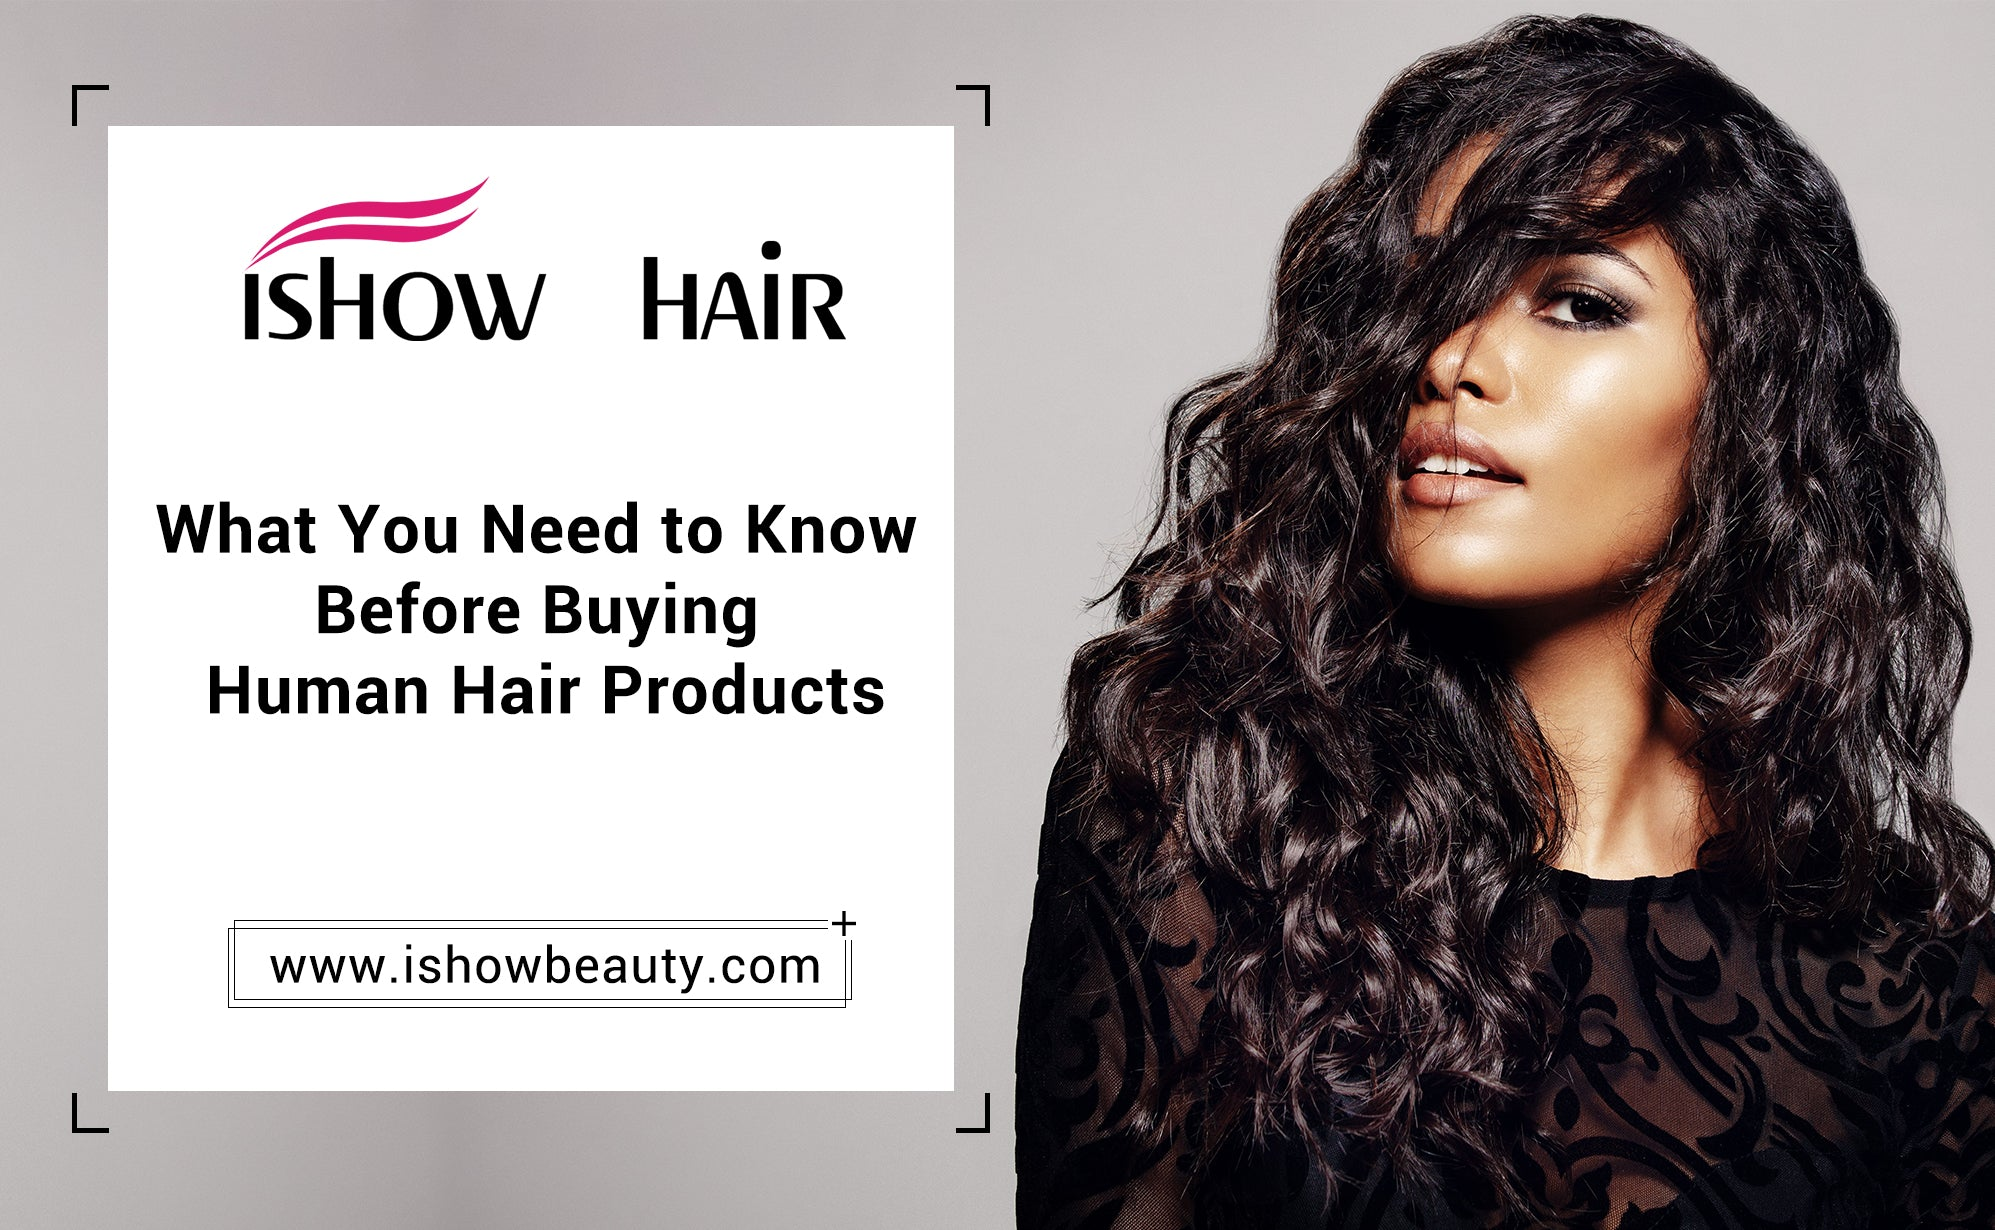 What You Need to Know Before Buying Human Hair Products